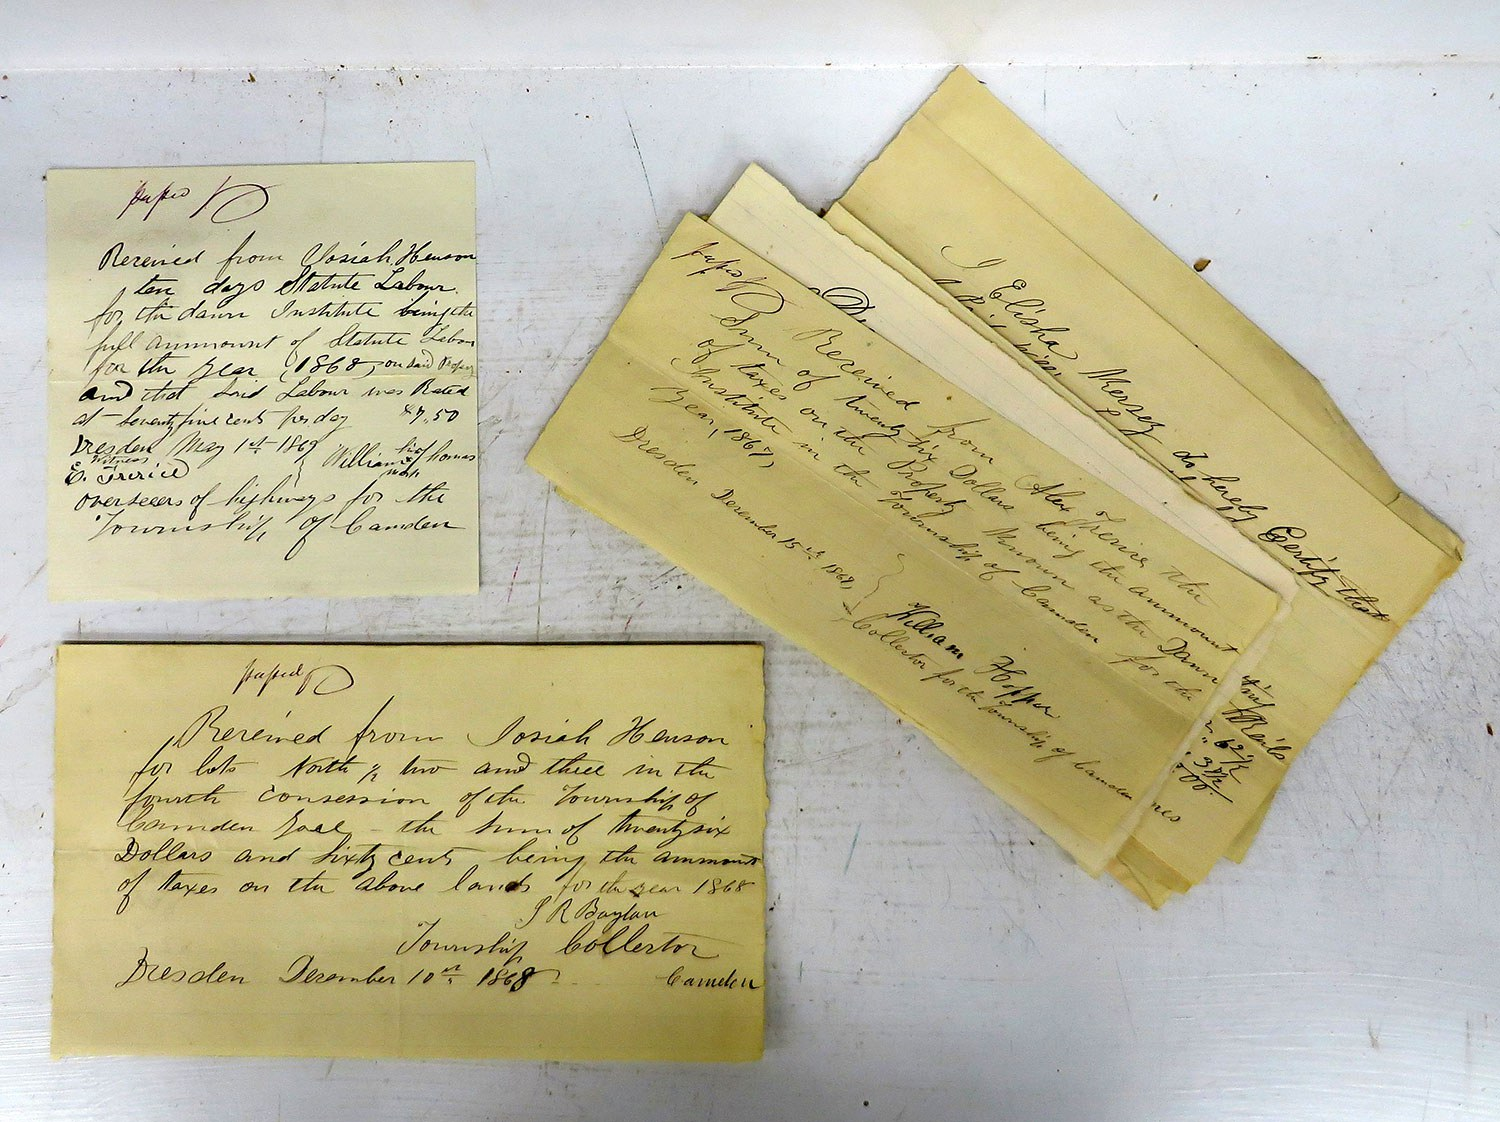 Handwritten receipts related to operation of the British American Institute.